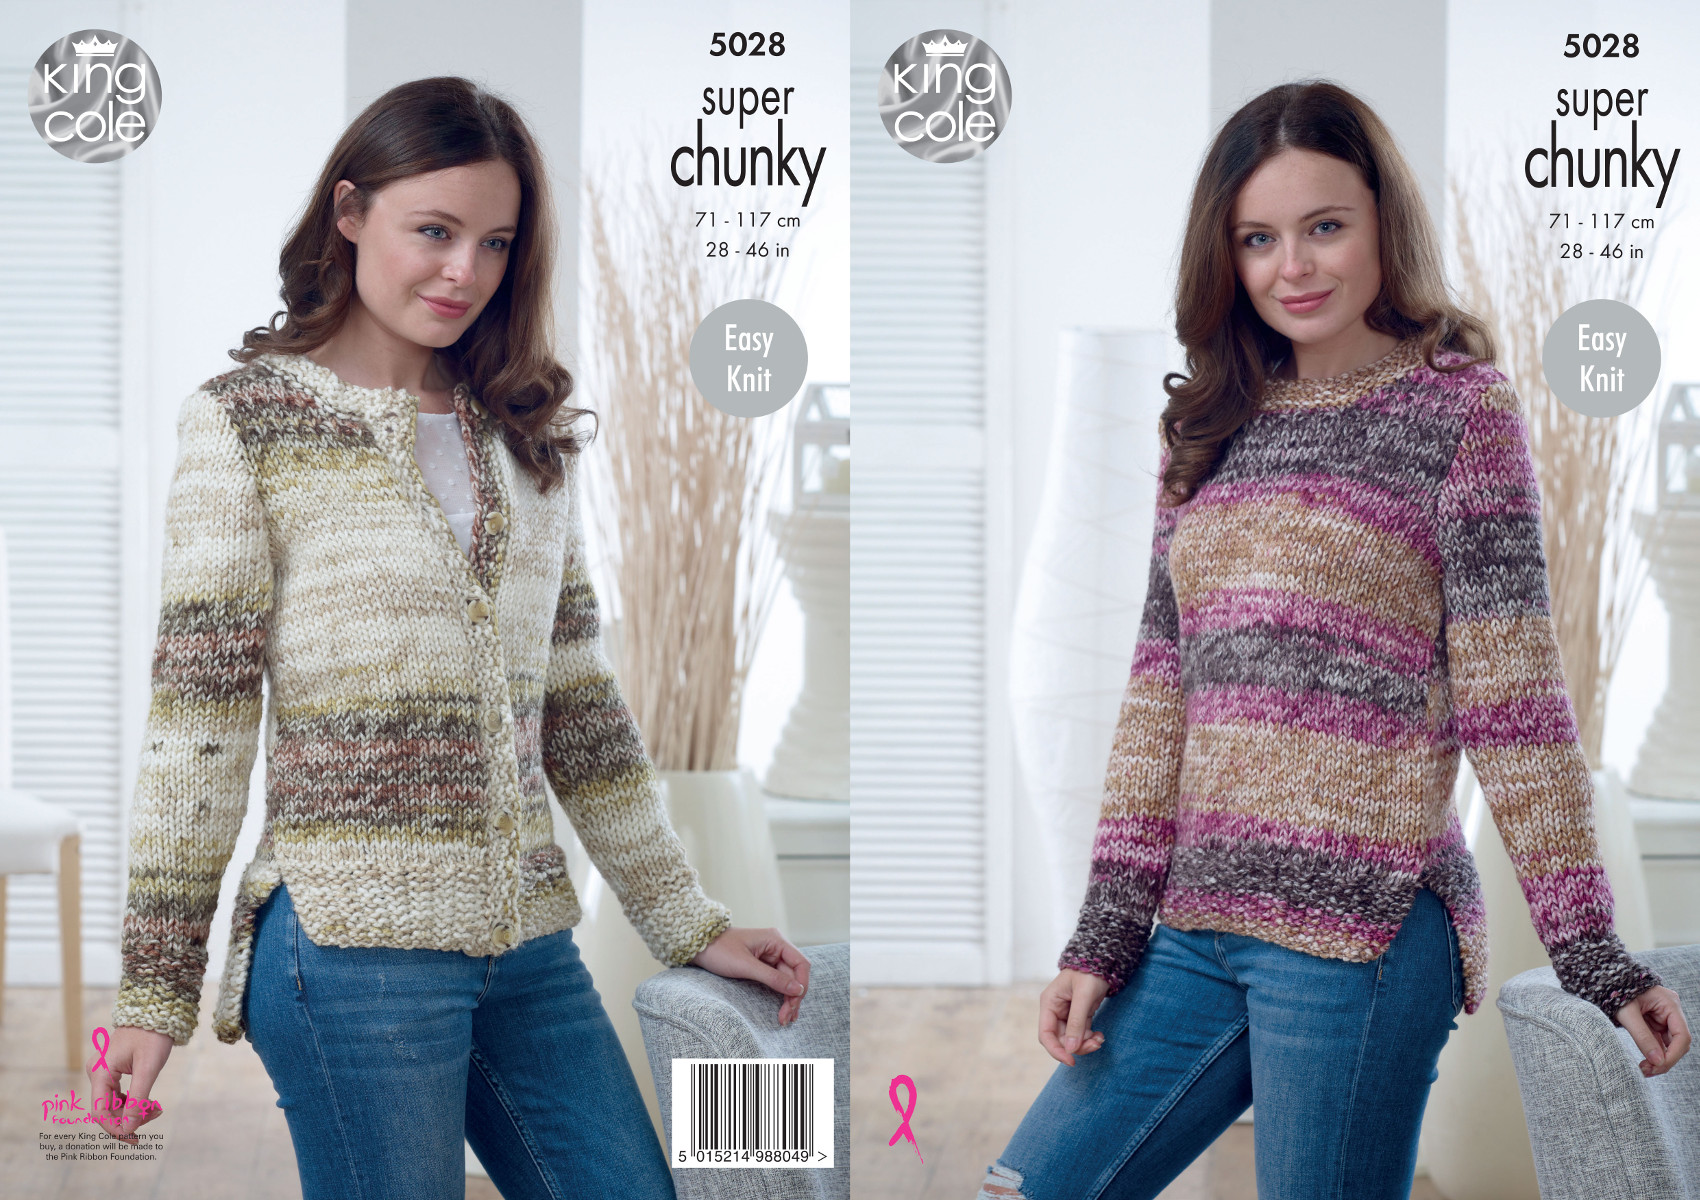 King Cole Ladies Super Chunky Knitting Pattern Easy Knit Sweater